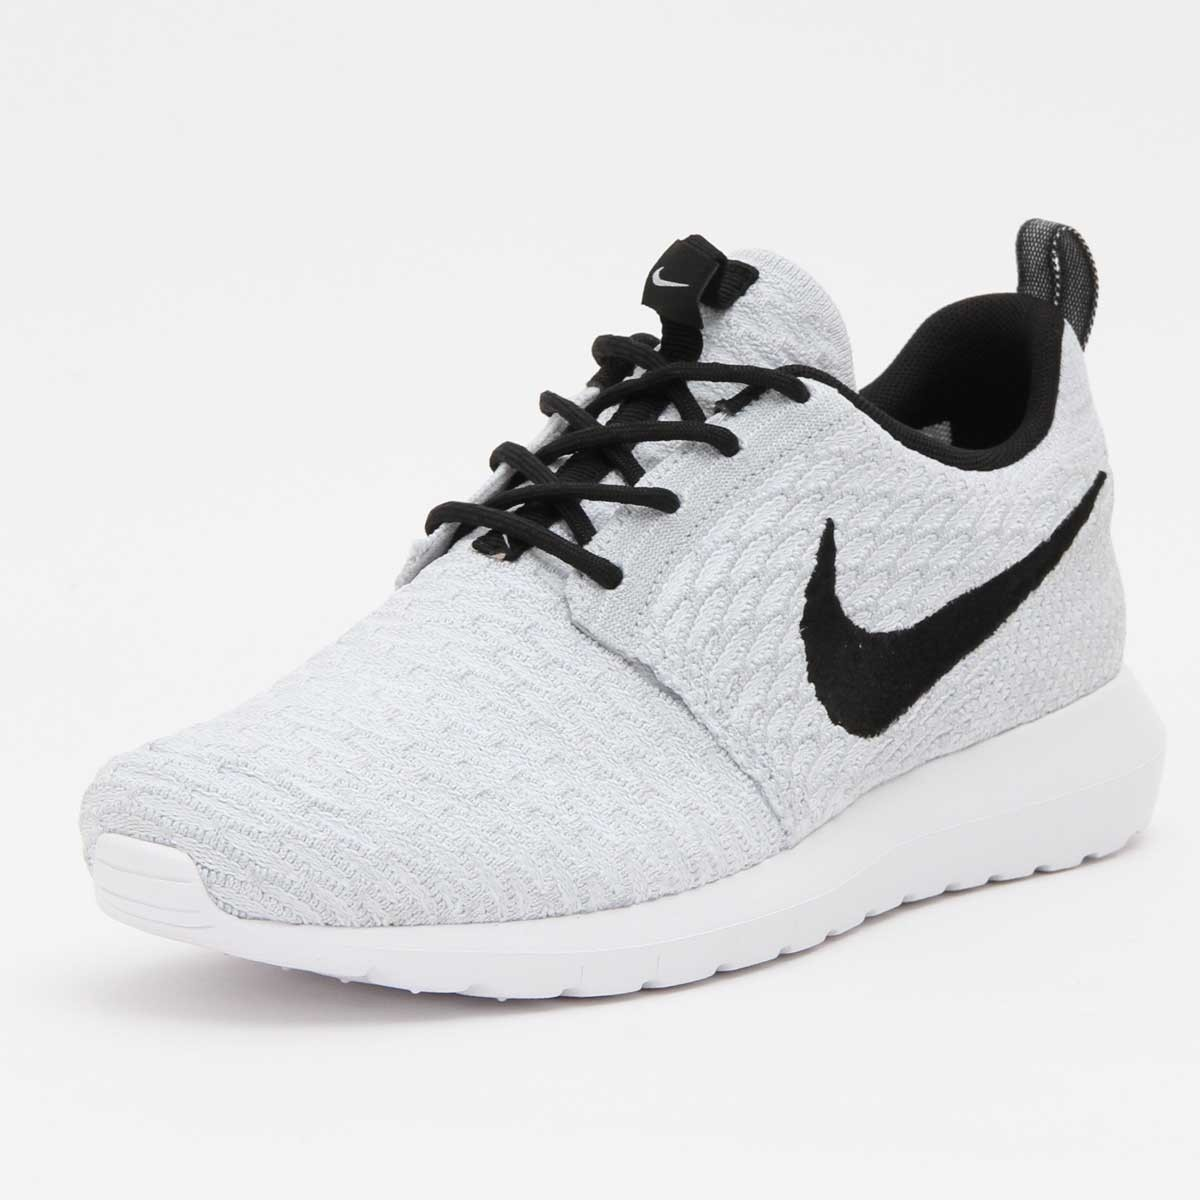 Chaussures Nike Roshe Run blanches Fashion homme Z4DTZqvaWx